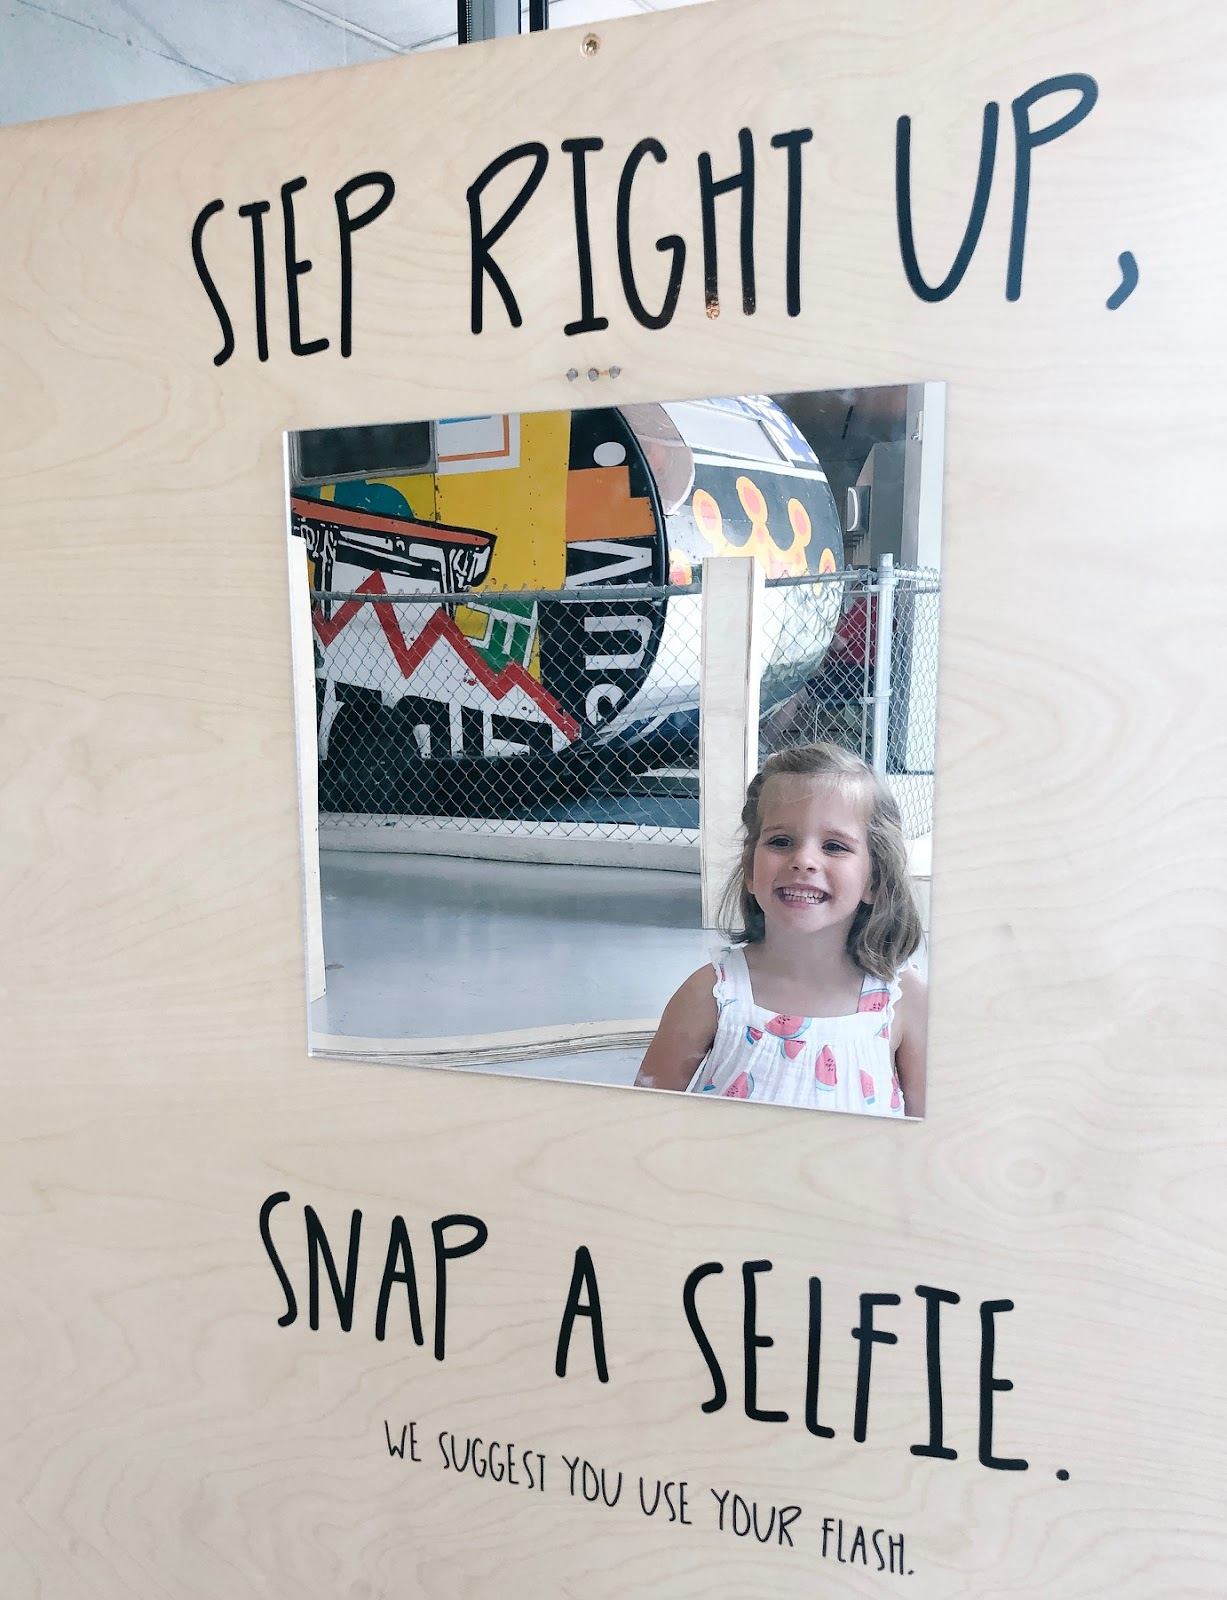 Selfies at the museum